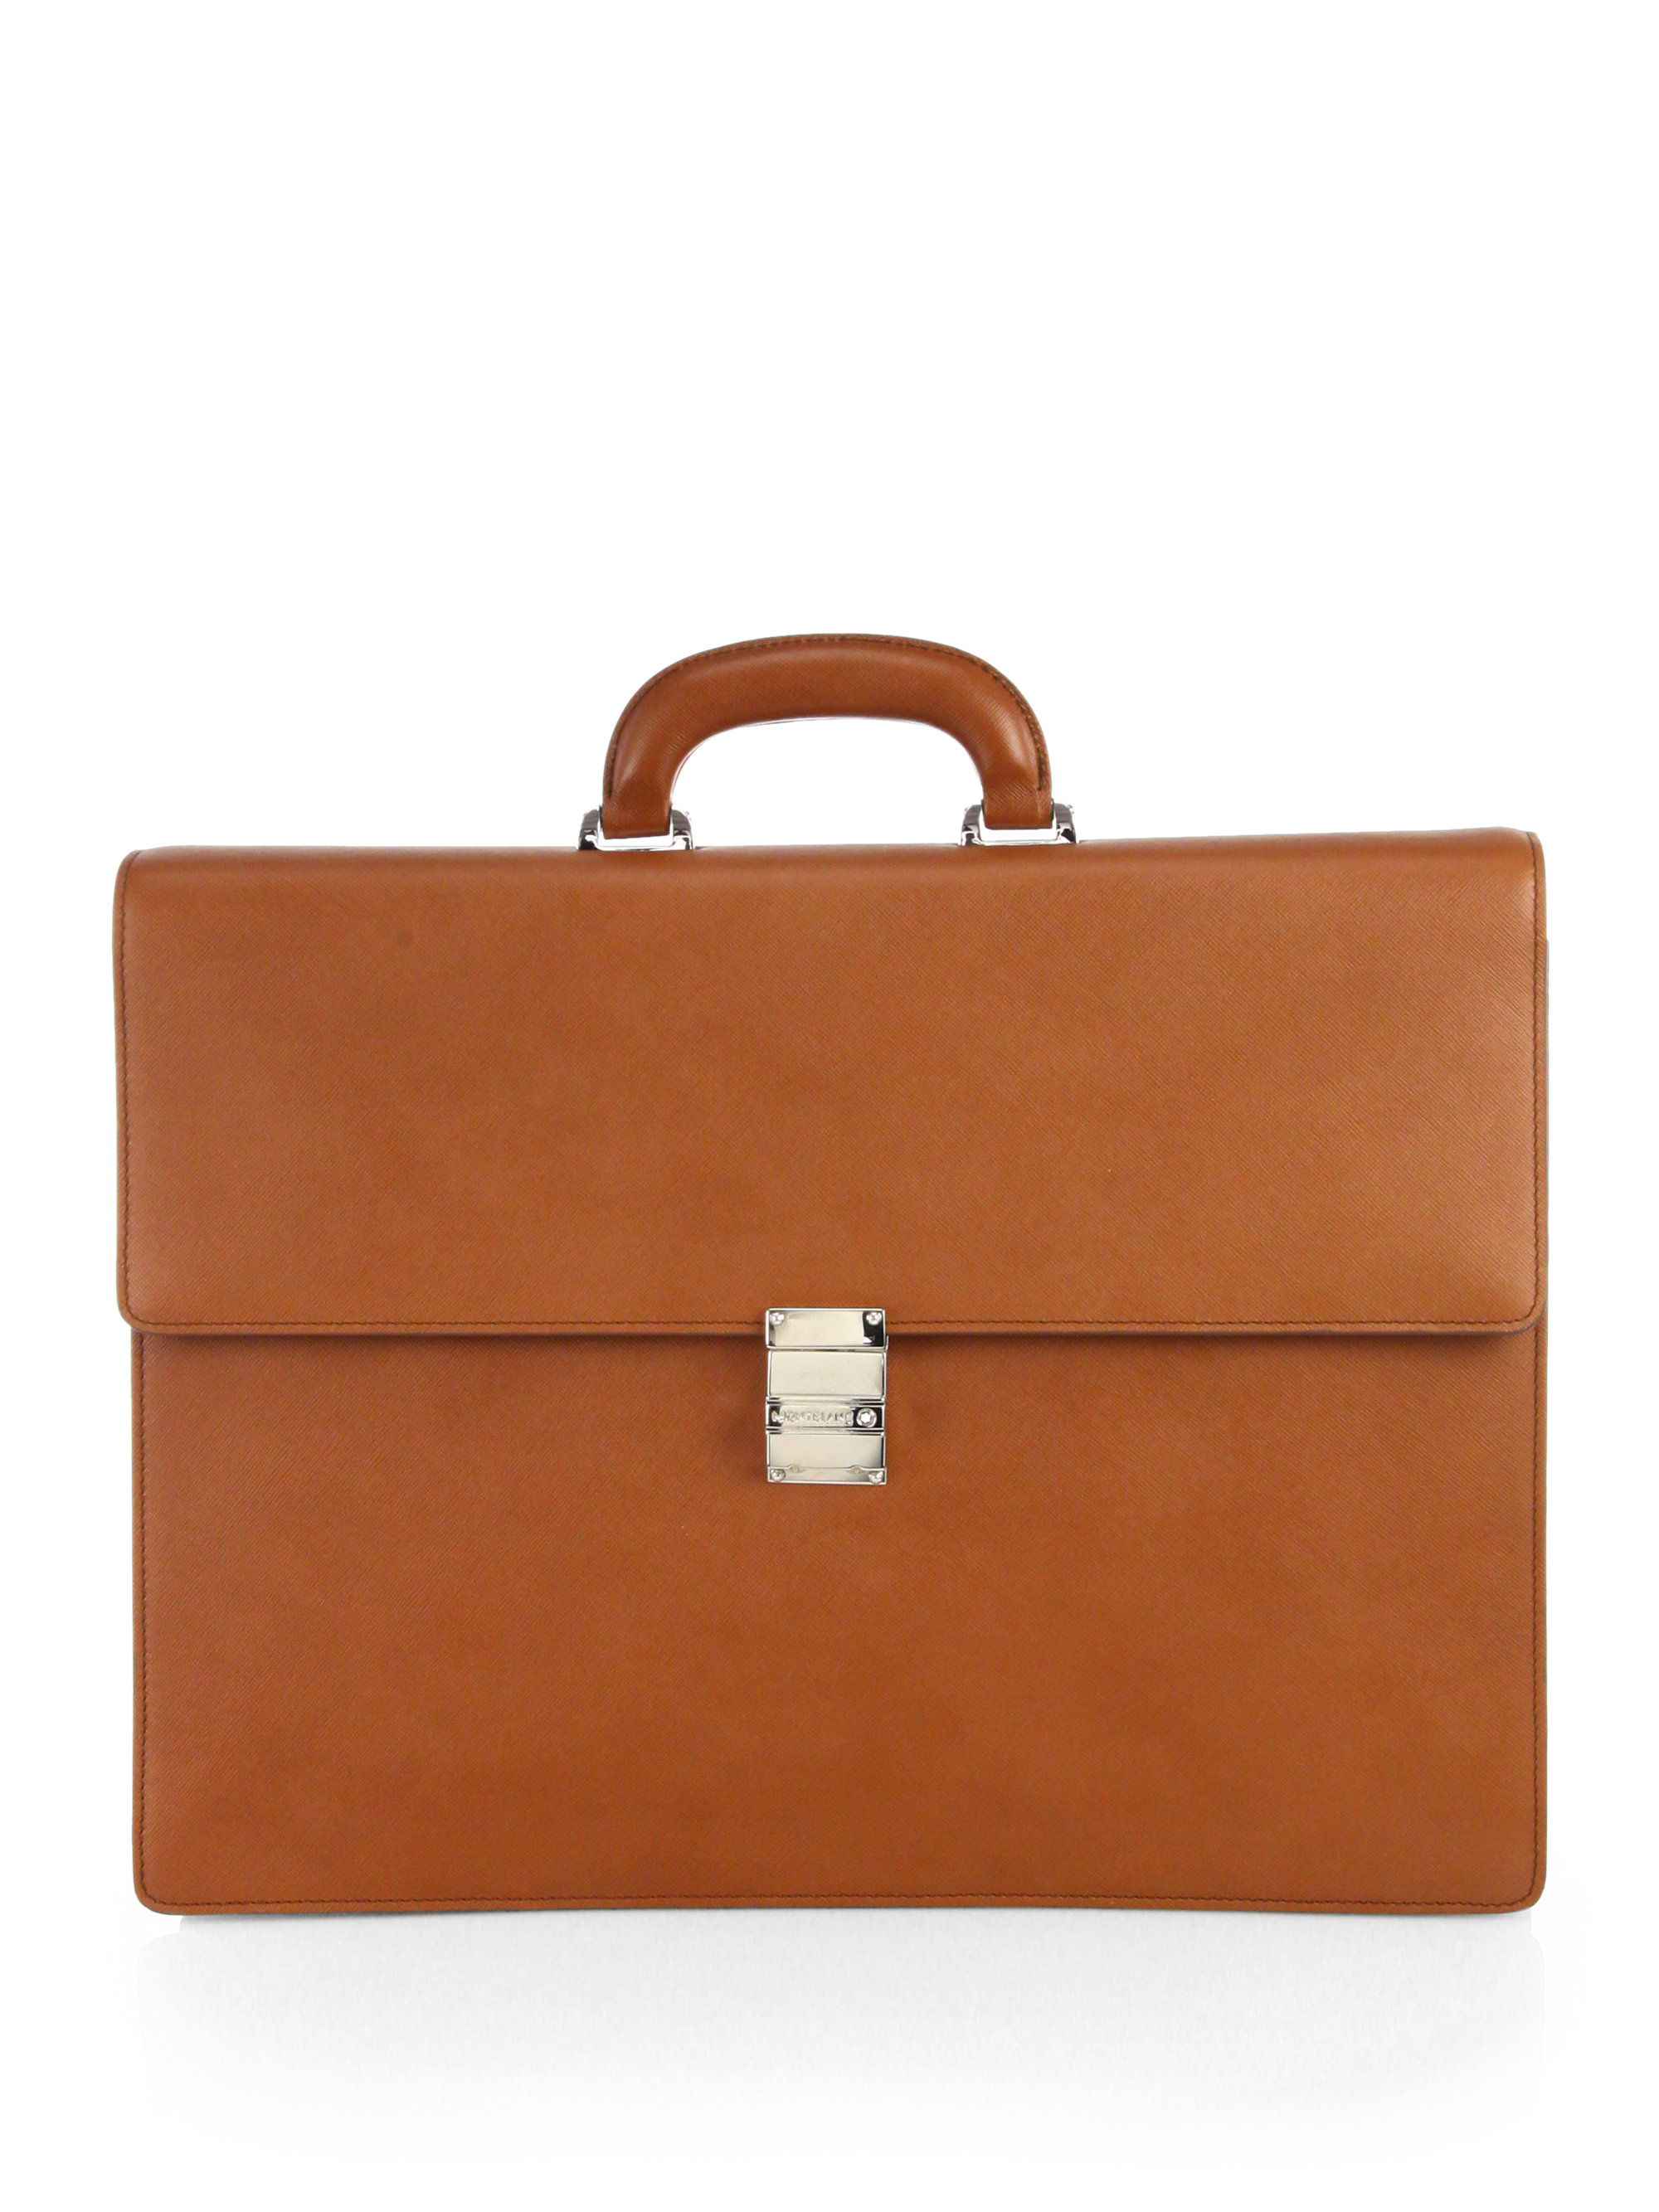 mens brown leather briefcase photo - 1